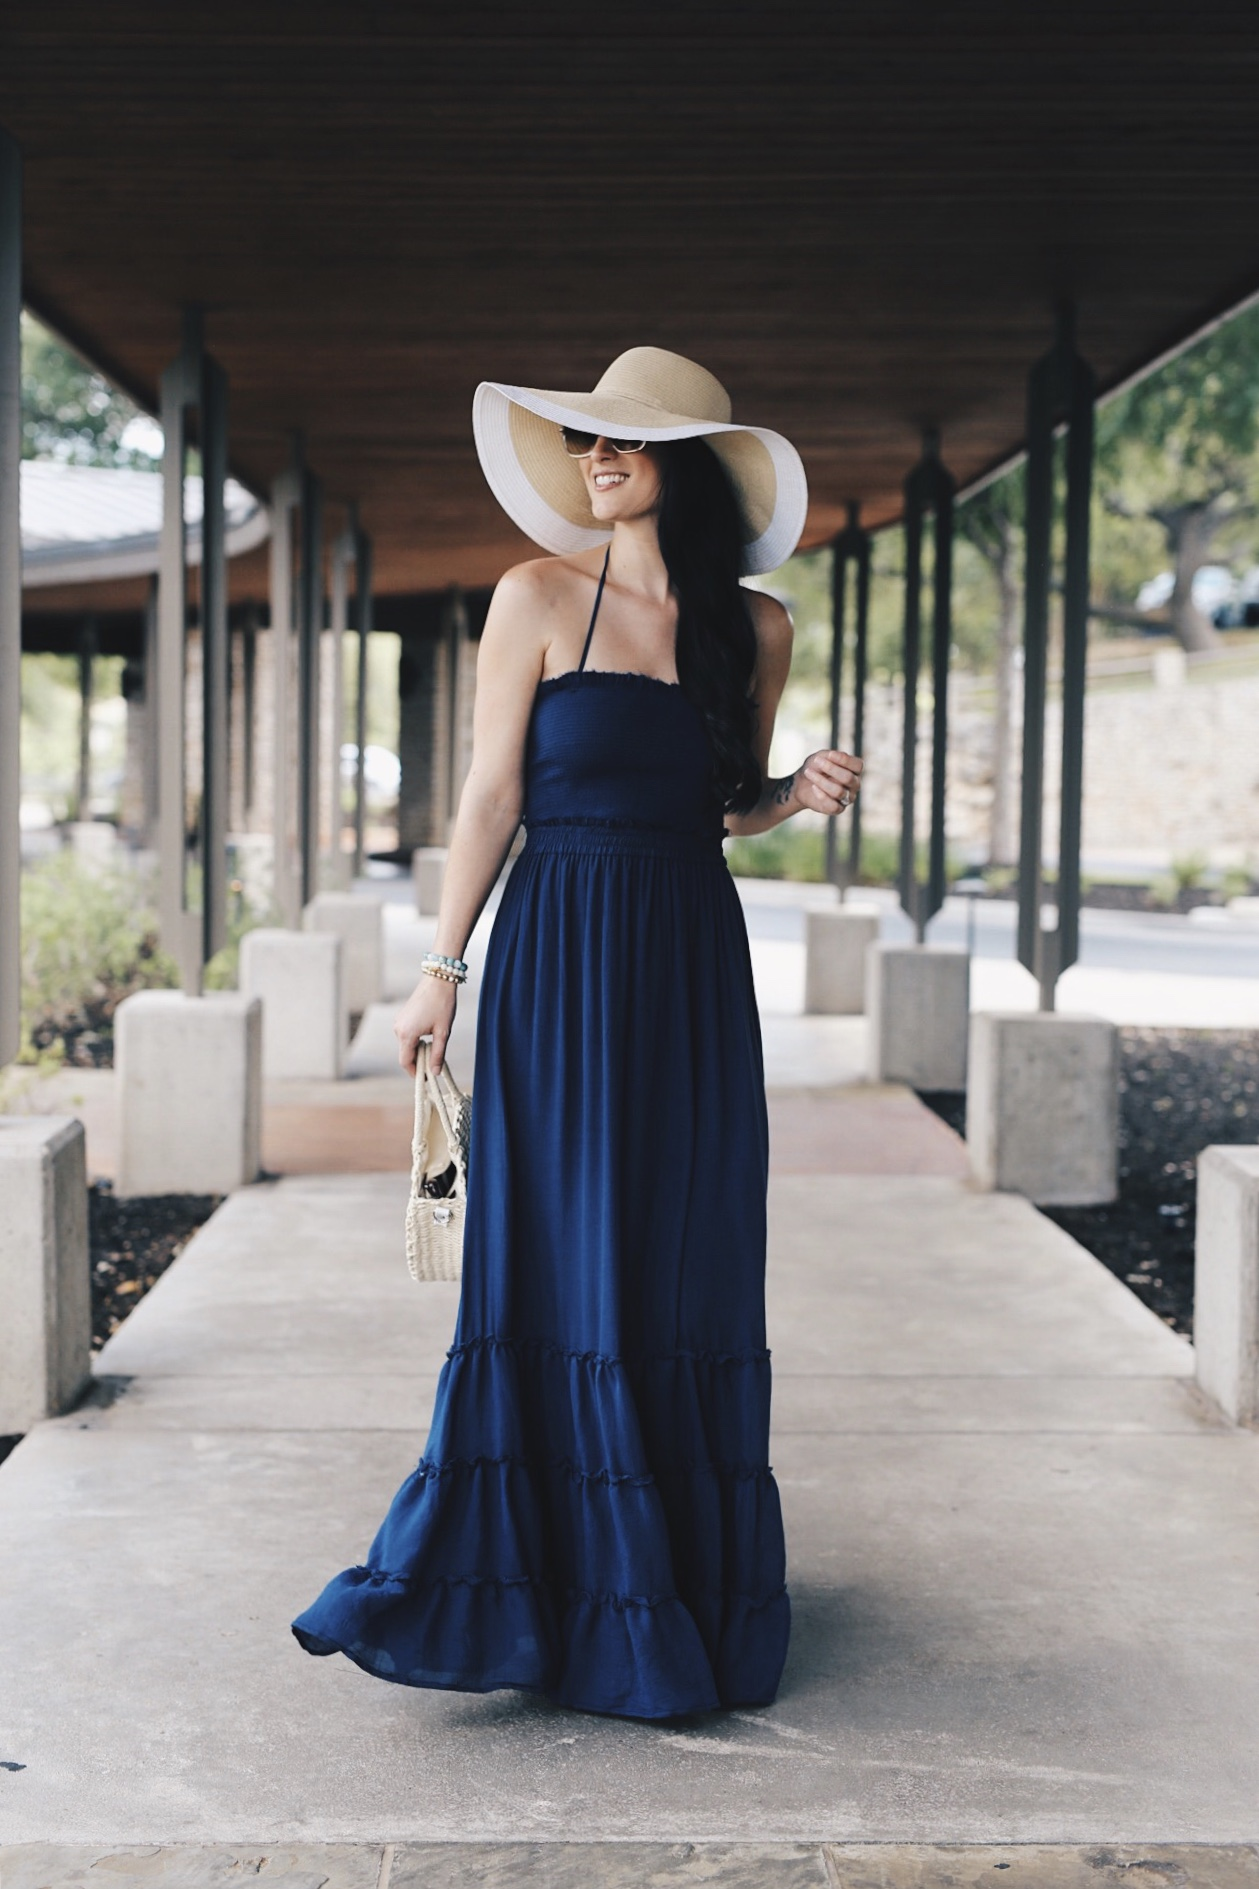 Maxi Dress and Hat | summer style for women | summer fashion for women | summer outfit ideas for women || DTK Austin #fashion #style #womensoutfits #maxidress #summerhat #summerfashion #summerstyle #summeroutfits - {Best Staycation Near Austin - Lakeway Resort & Spa} by popular Austin blogger, Dressed to Kill